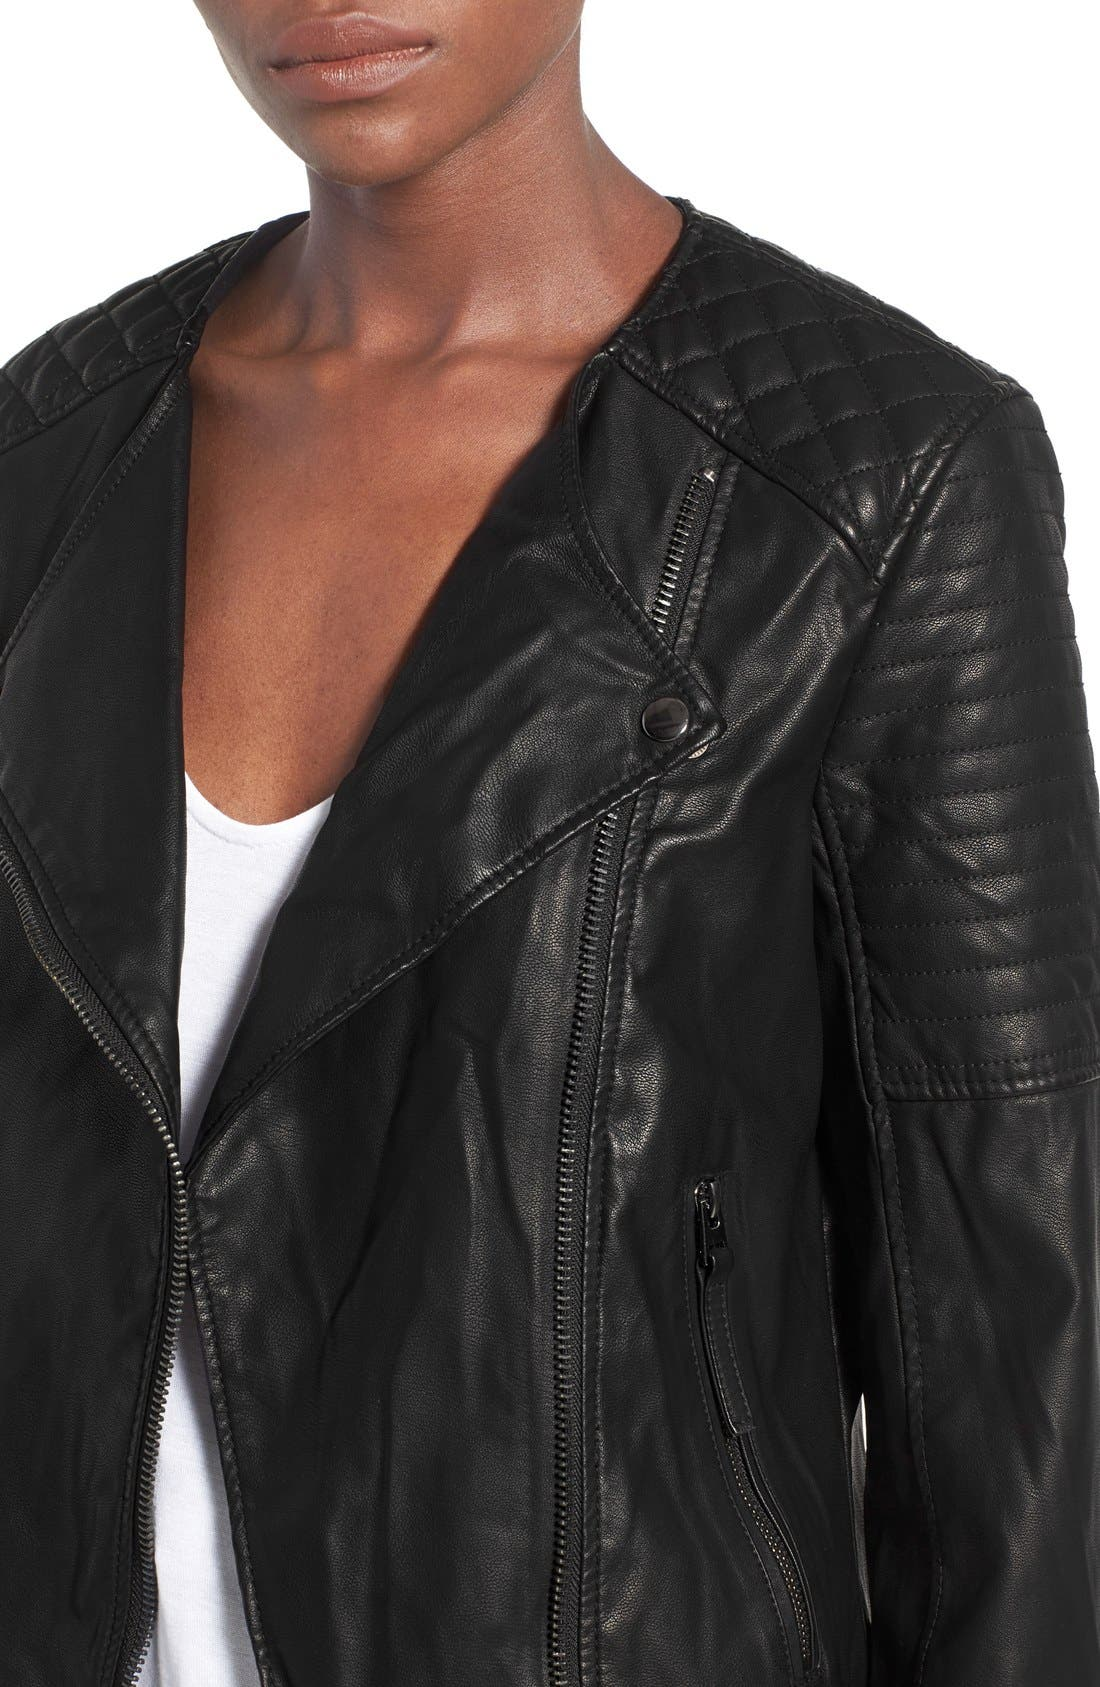 TOPSHOP, Faux Leather Biker Jacket, Alternate thumbnail 2, color, 001